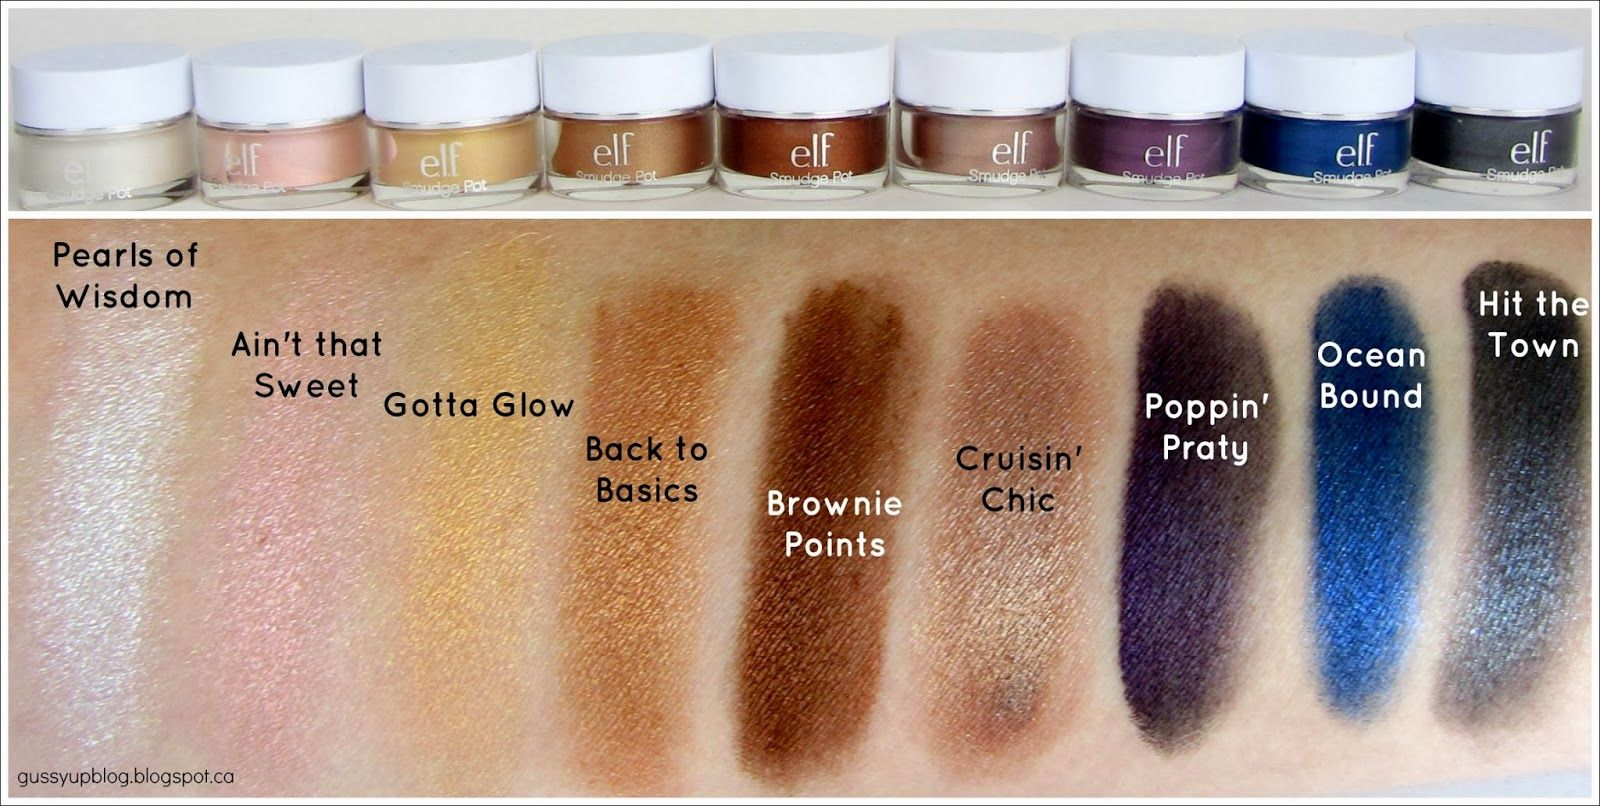 e.l.f. Essential Smudge Pot, Review and Swatches Elf